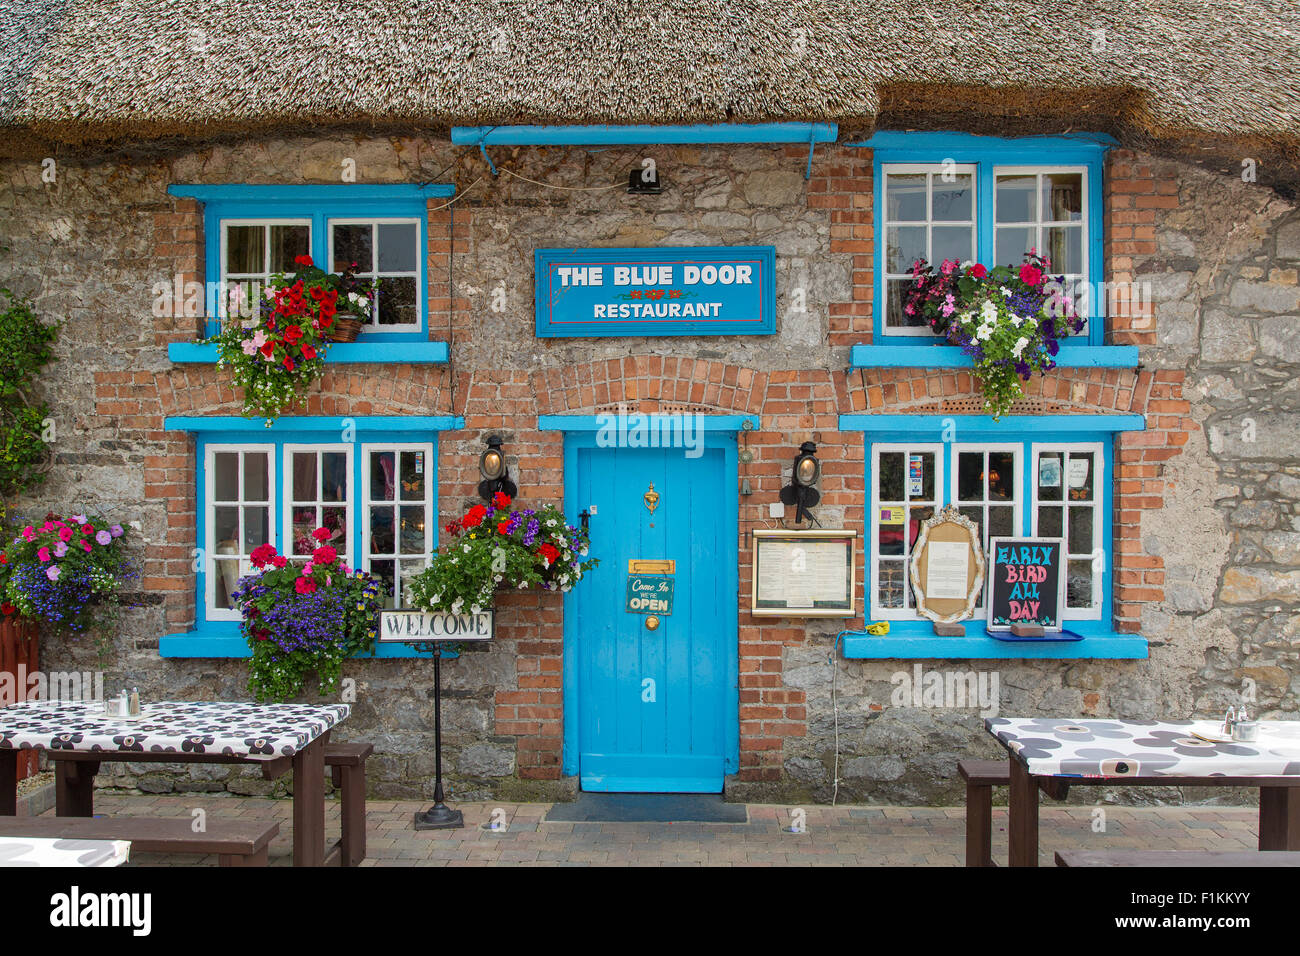 Cottage Cafe in Adare, County Limerick, Republic of Ireland - Stock Image